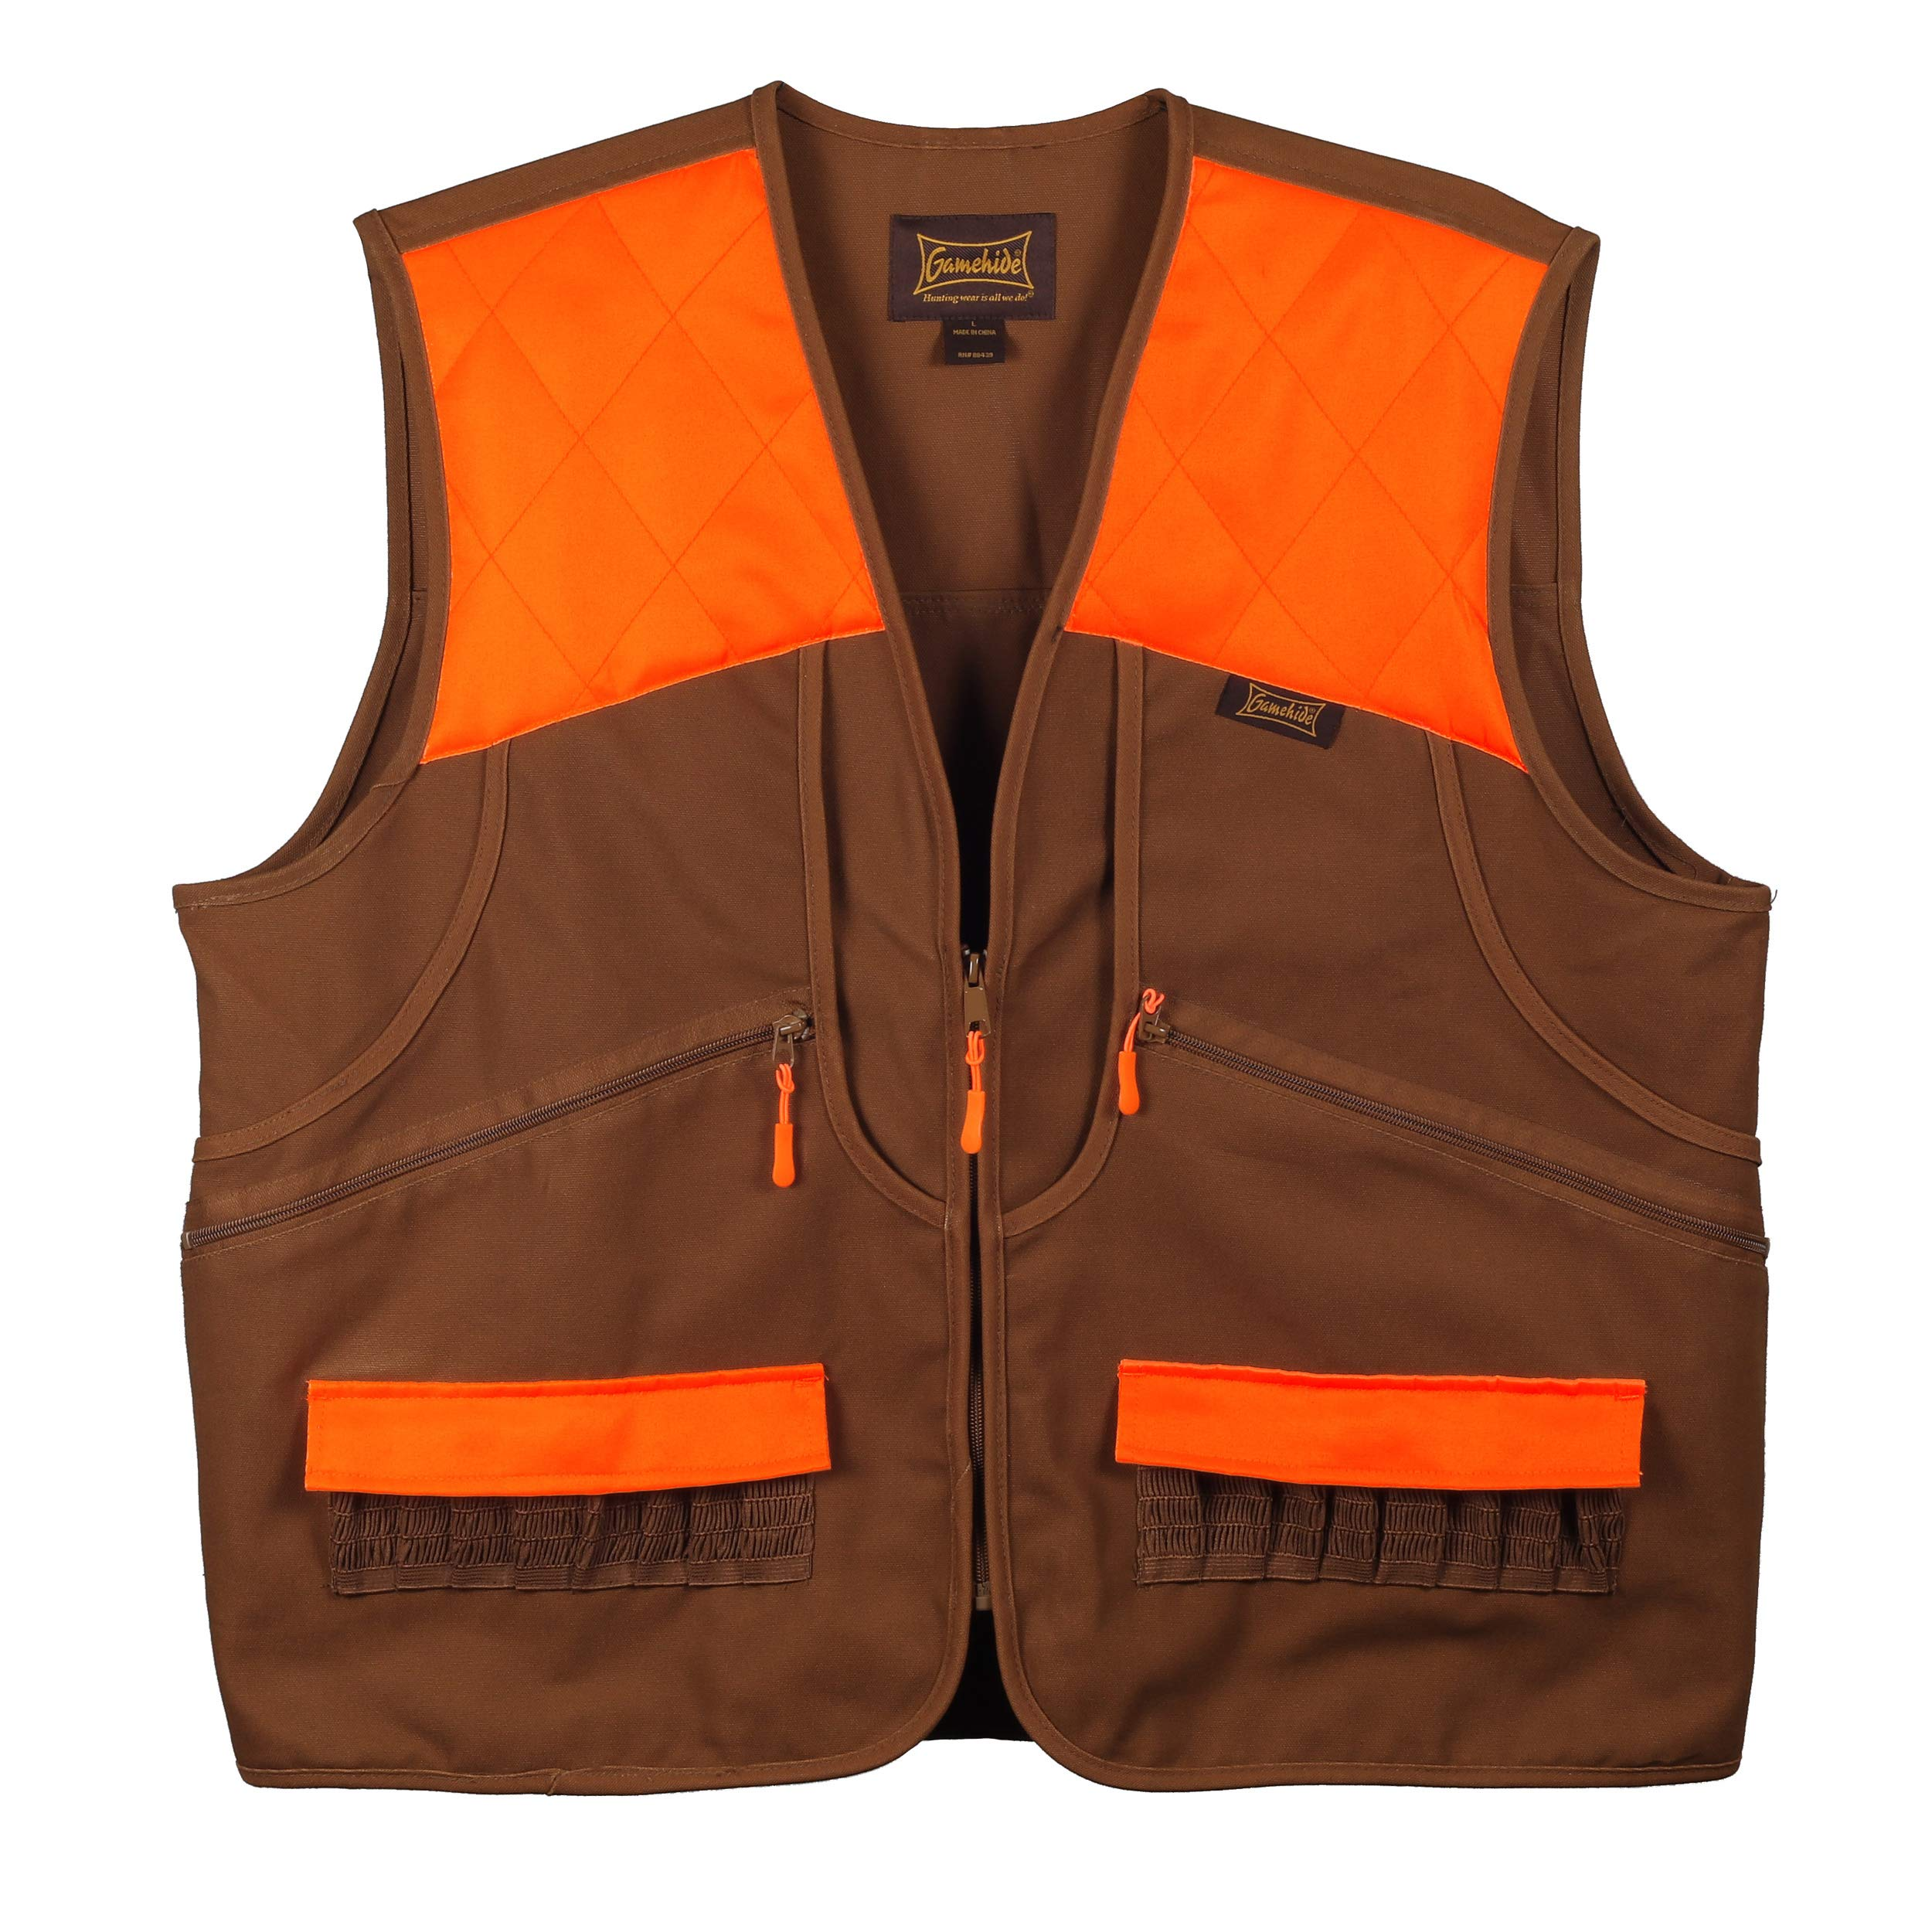 Gamehide Switchgrass Upland Field Bird Vest (Marsh Brown/Orange, Small) by Gamehide